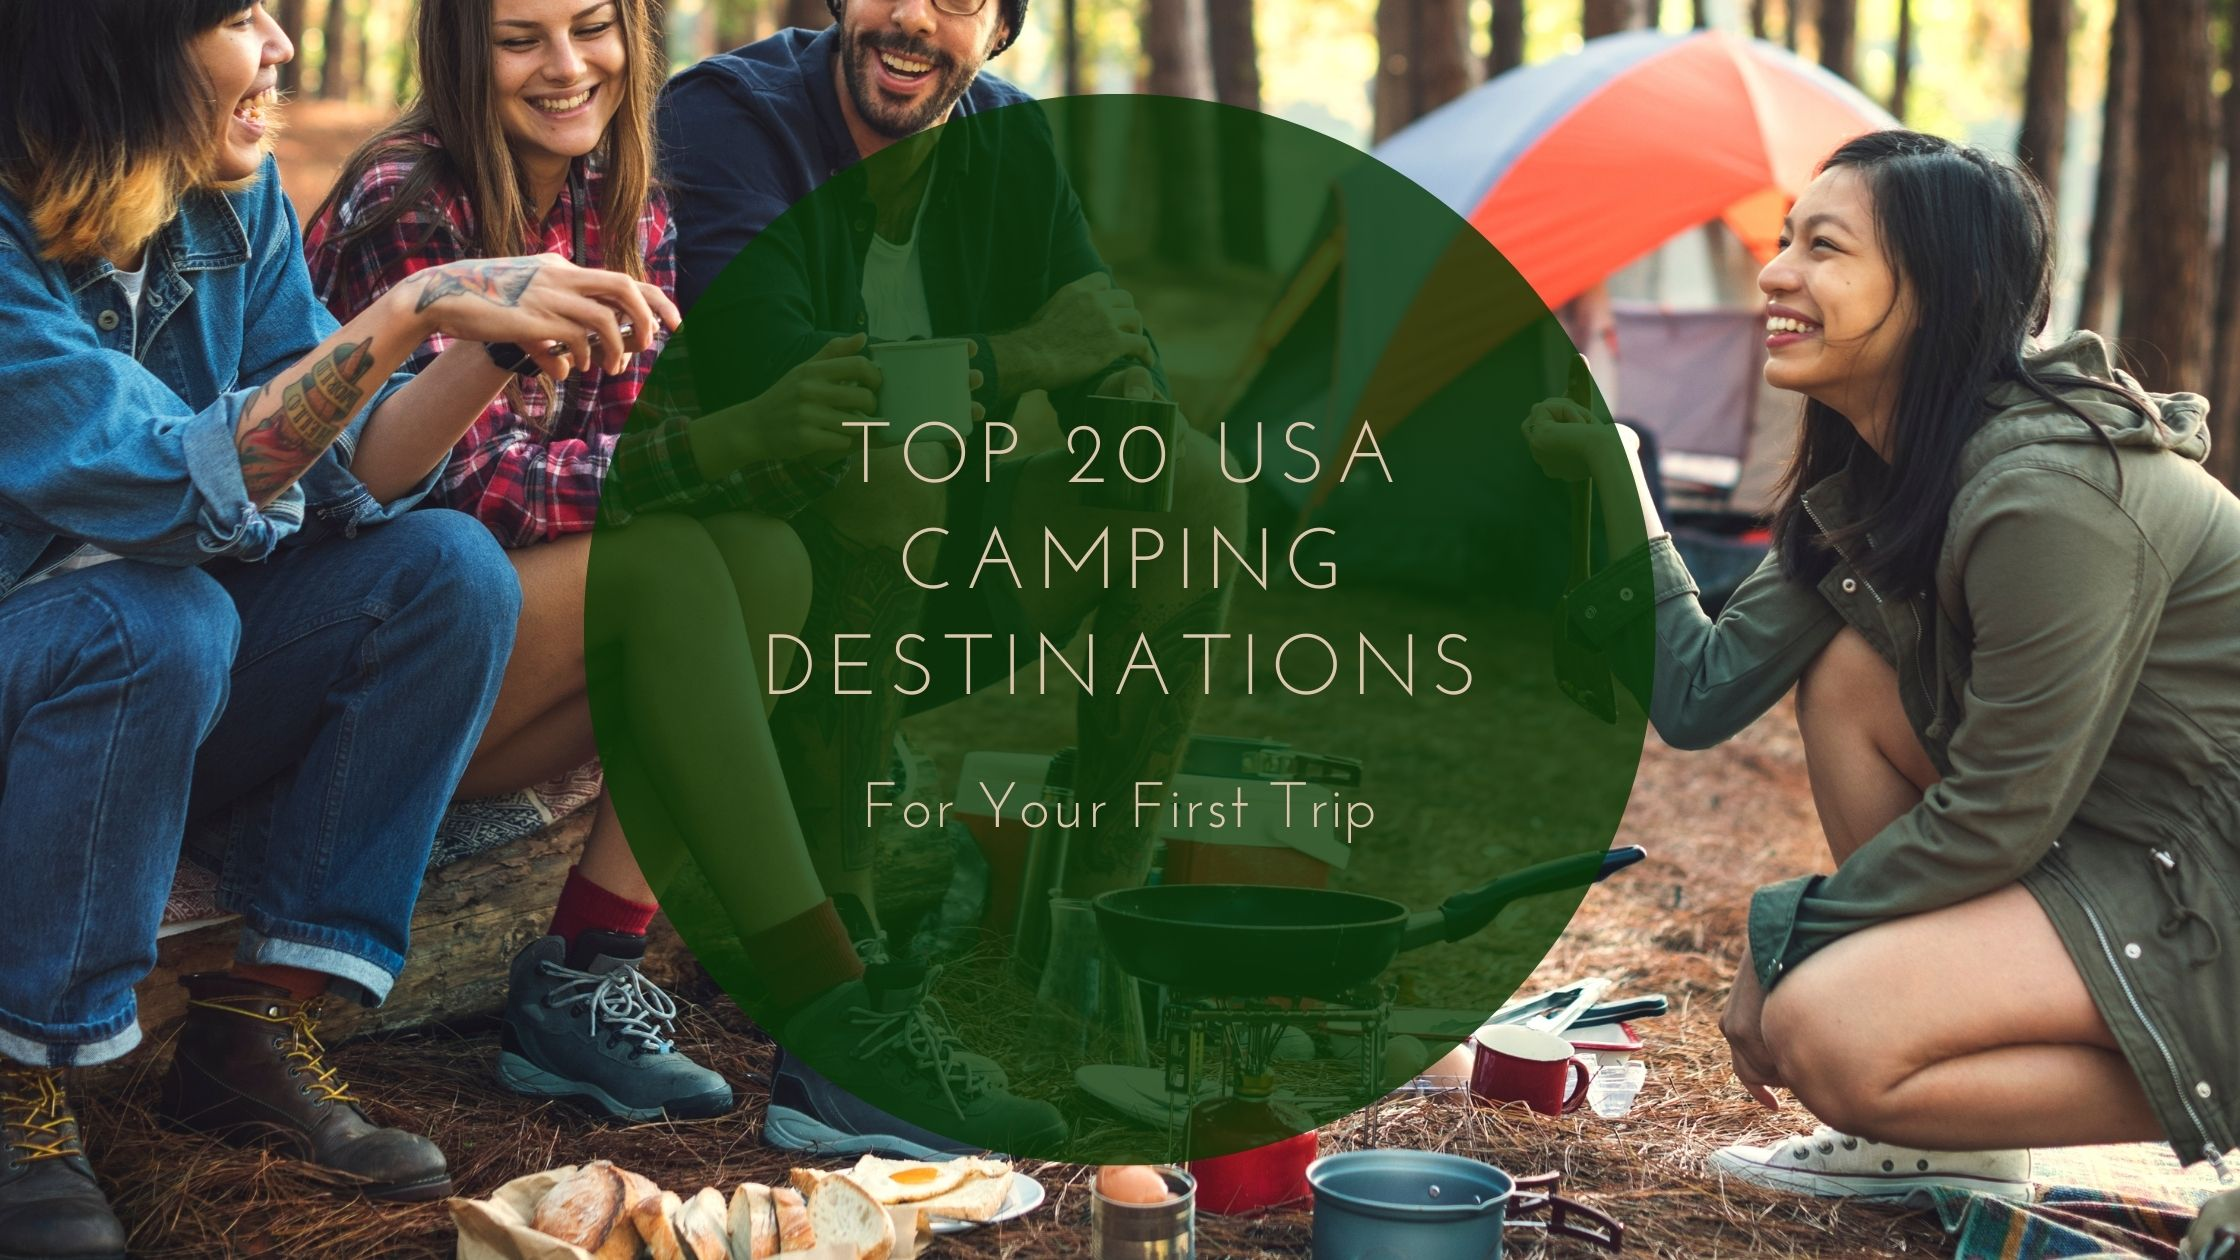 Top 20 USA Camping Destinations for Your First Trip